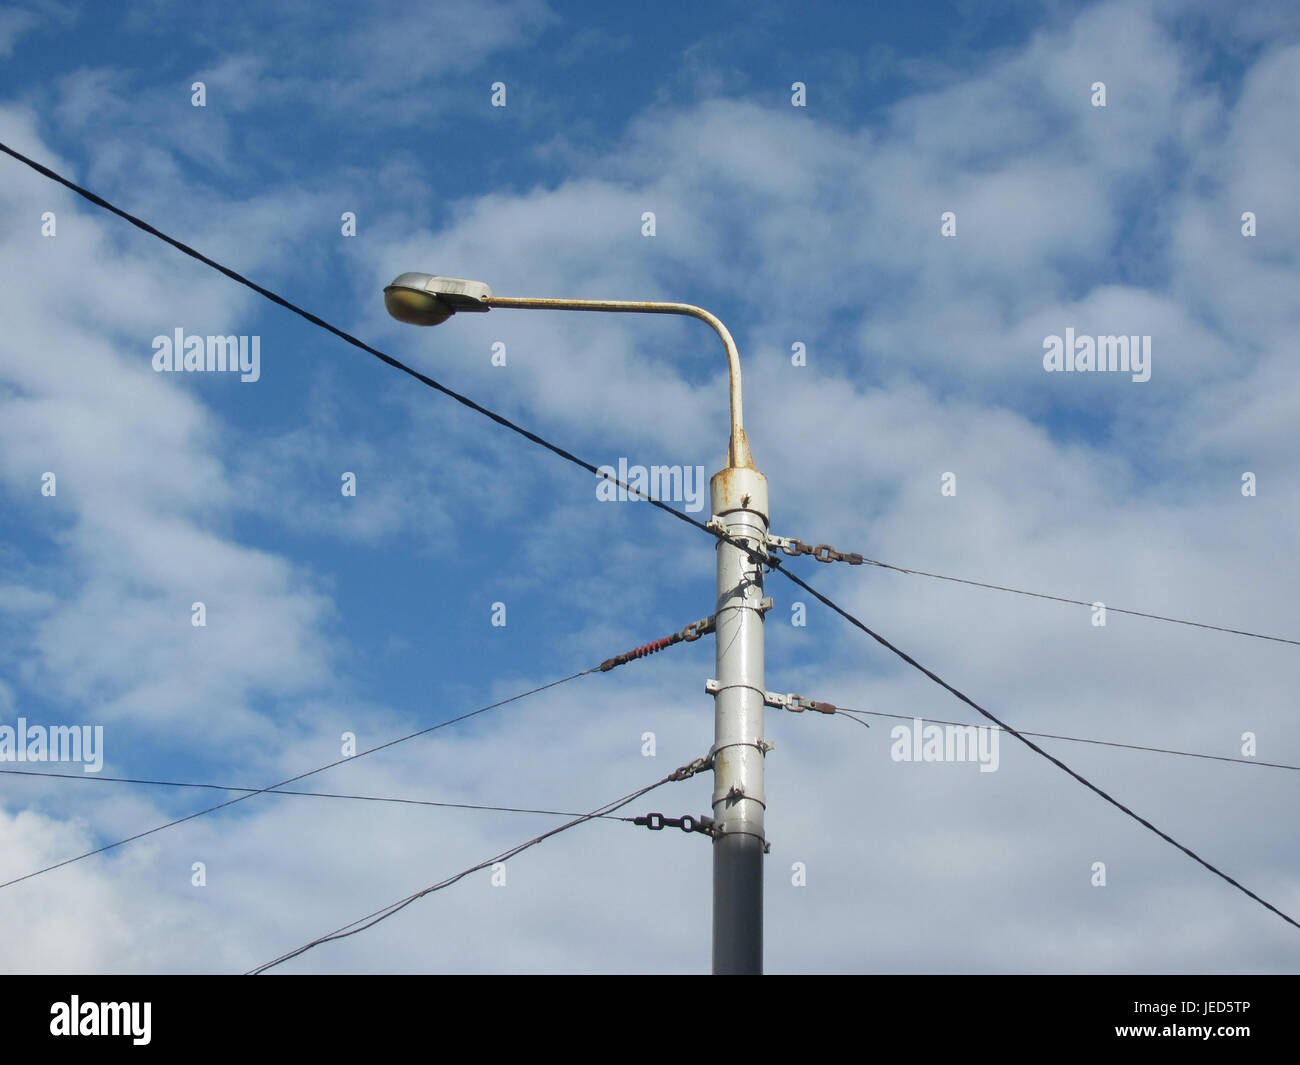 Mast Wires Stock Photos Images Alamy Wiring A Light Fixture Blue Wire Lighting Against The Sky Image